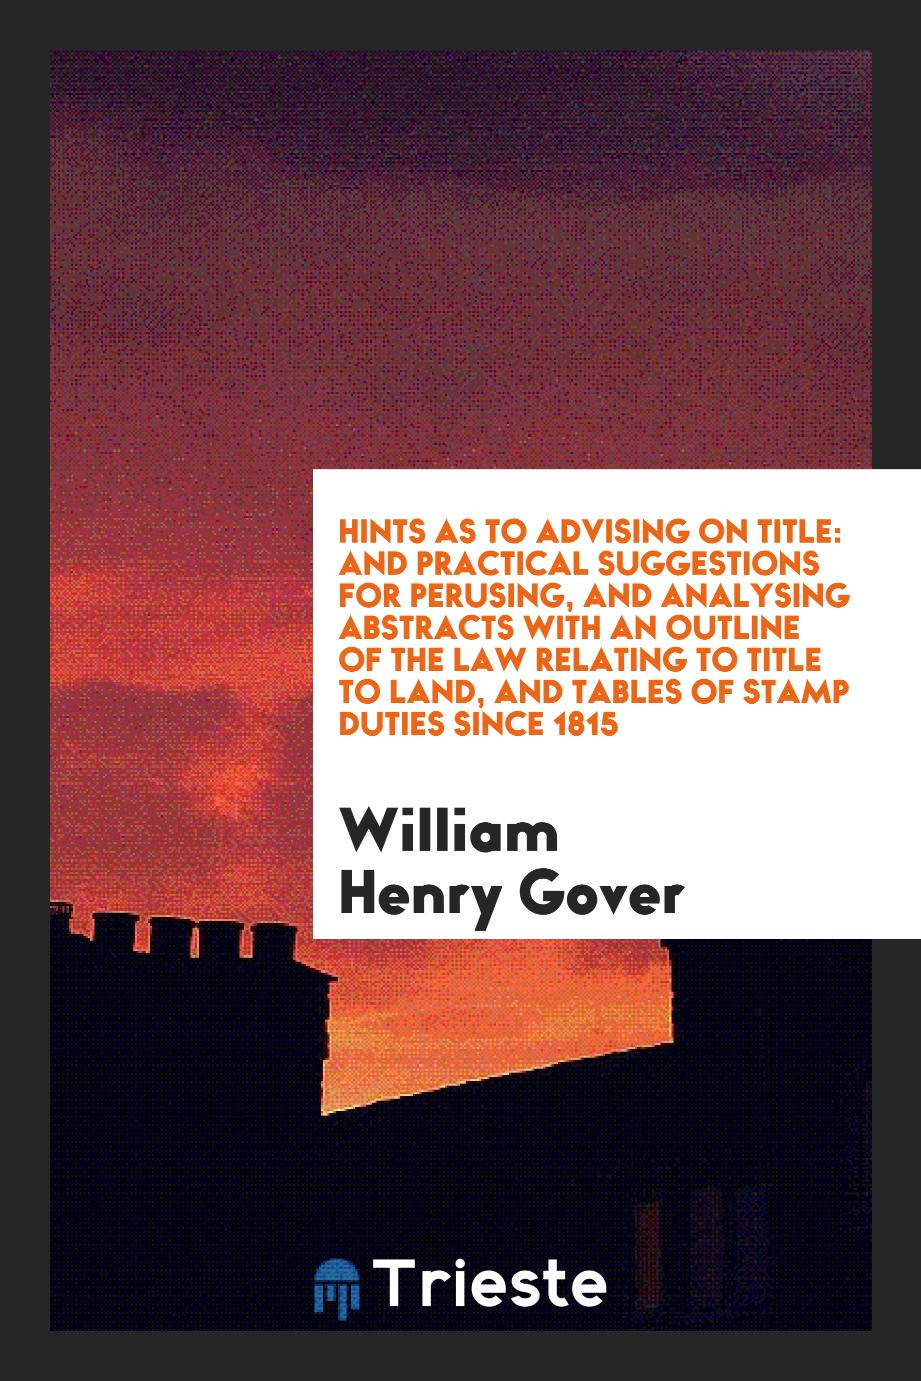 Hints as to Advising on Title: And Practical Suggestions for Perusing, and Analysing Abstracts with an Outline of the Law Relating to Title to Land, and Tables of Stamp Duties Since 1815